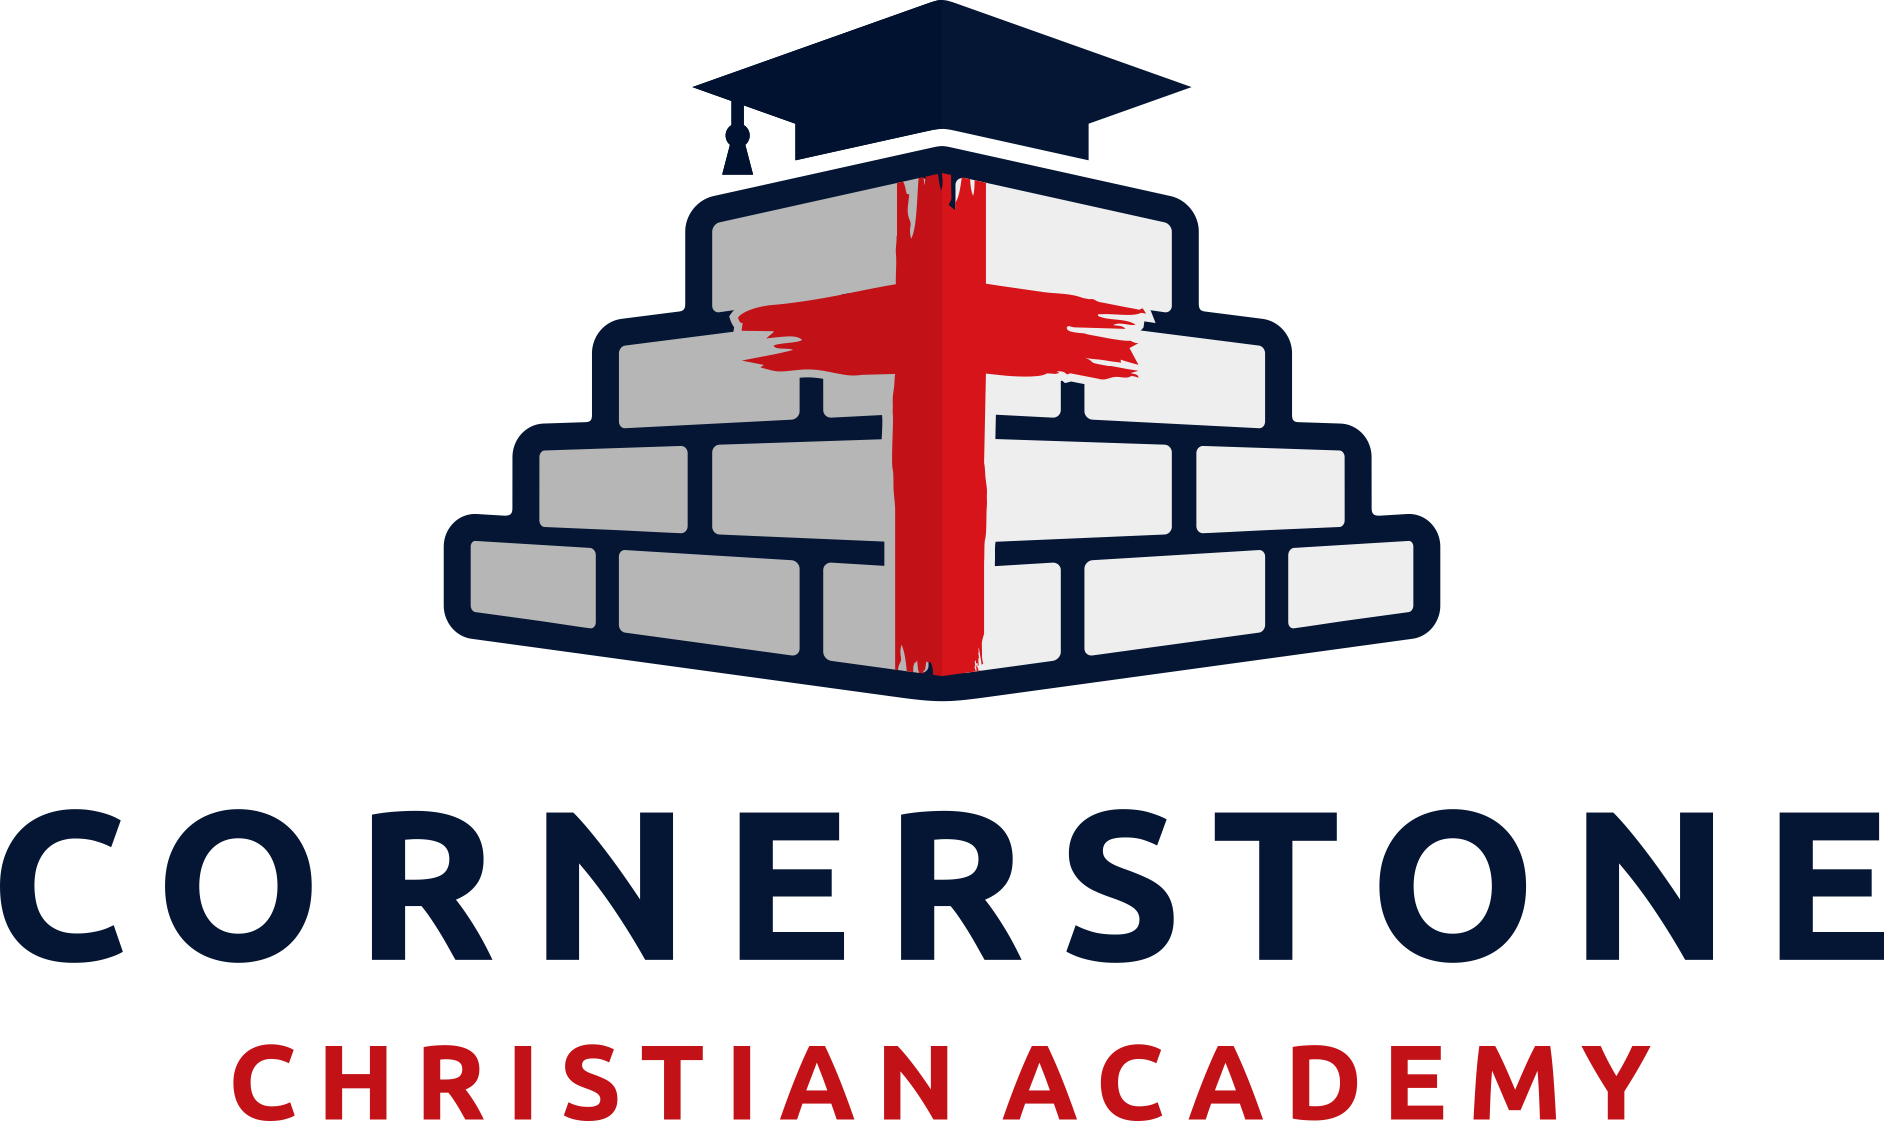 We need simple but identifiable design for local Christian Academy